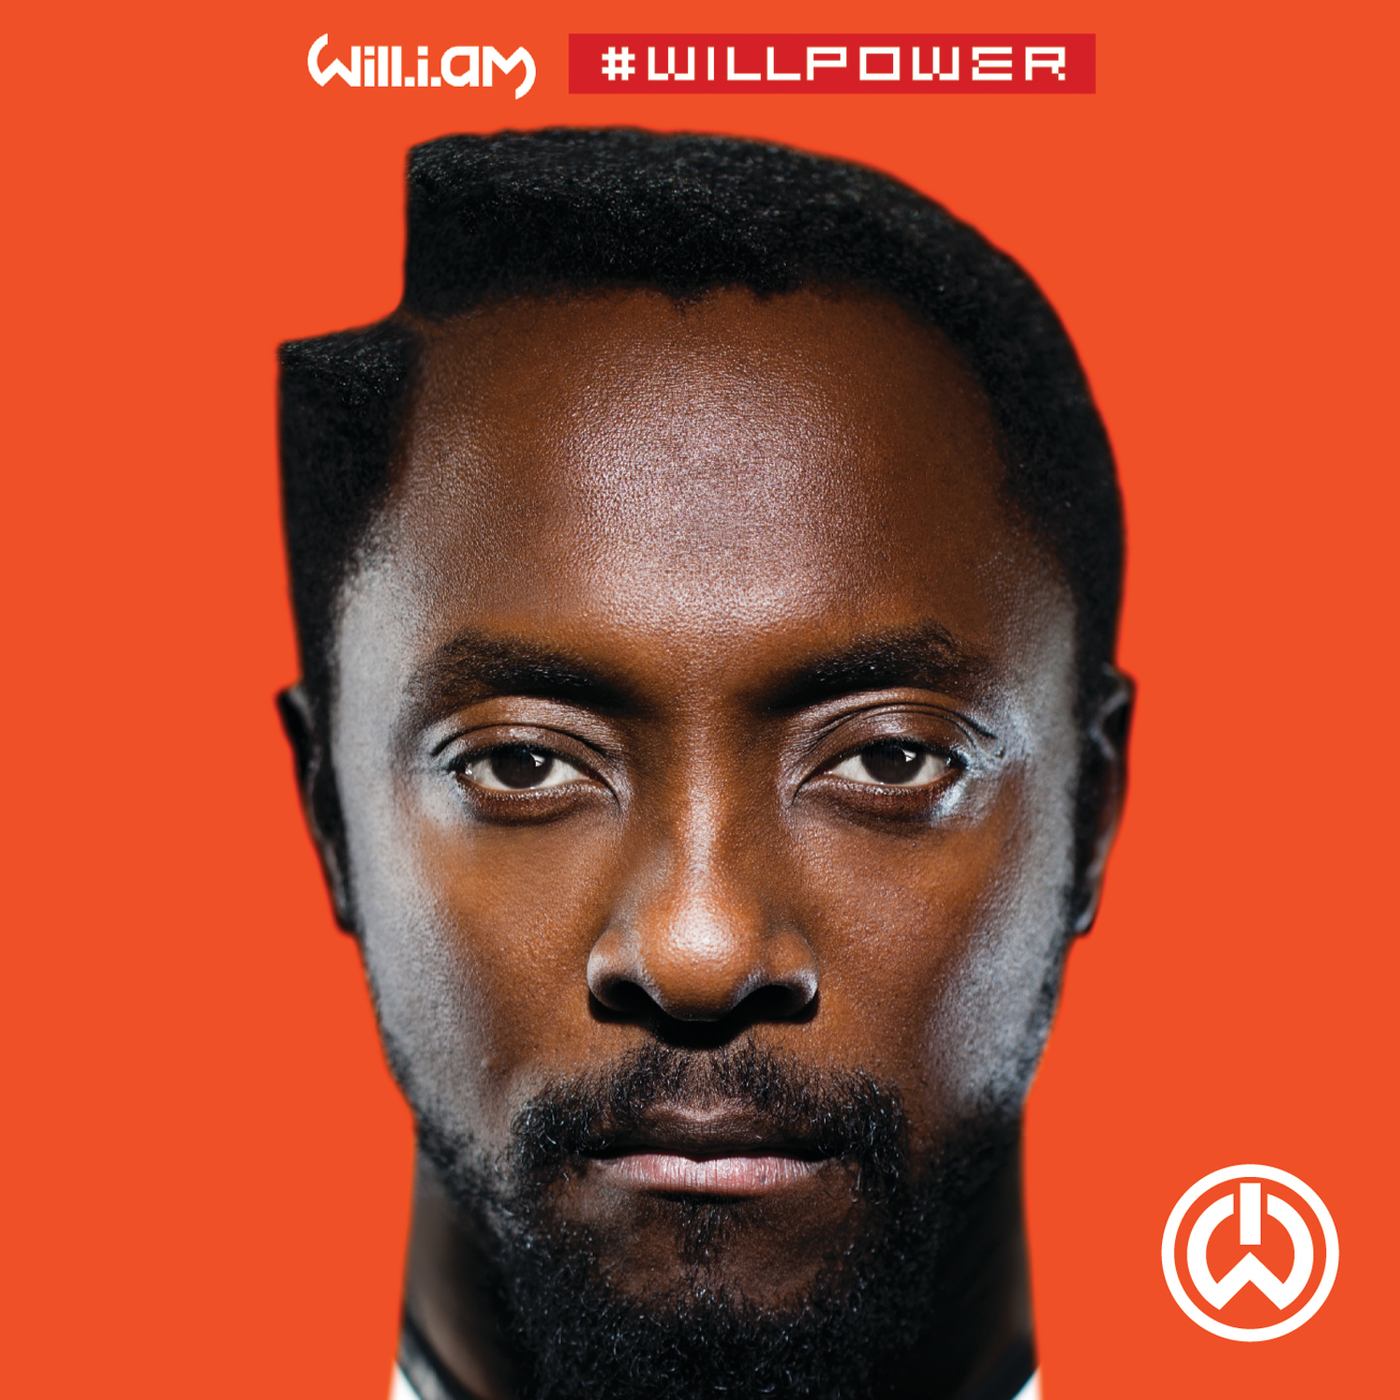 will.i.am, #willpower